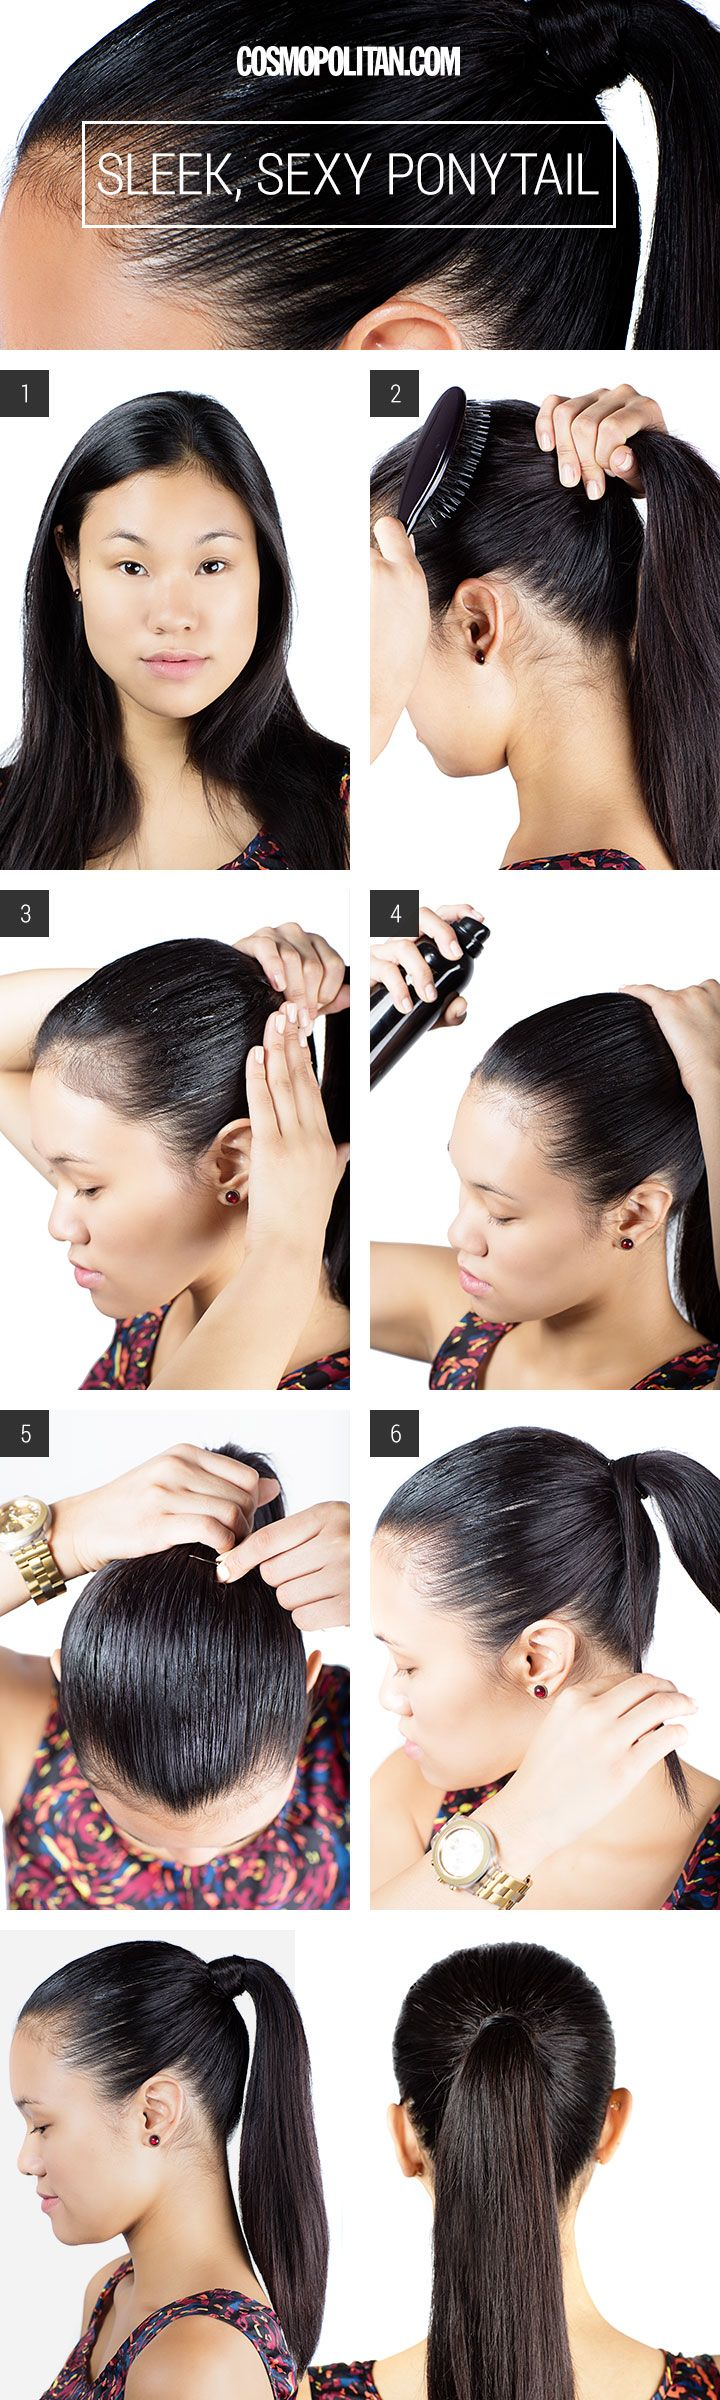 How to make sexy hairstyle